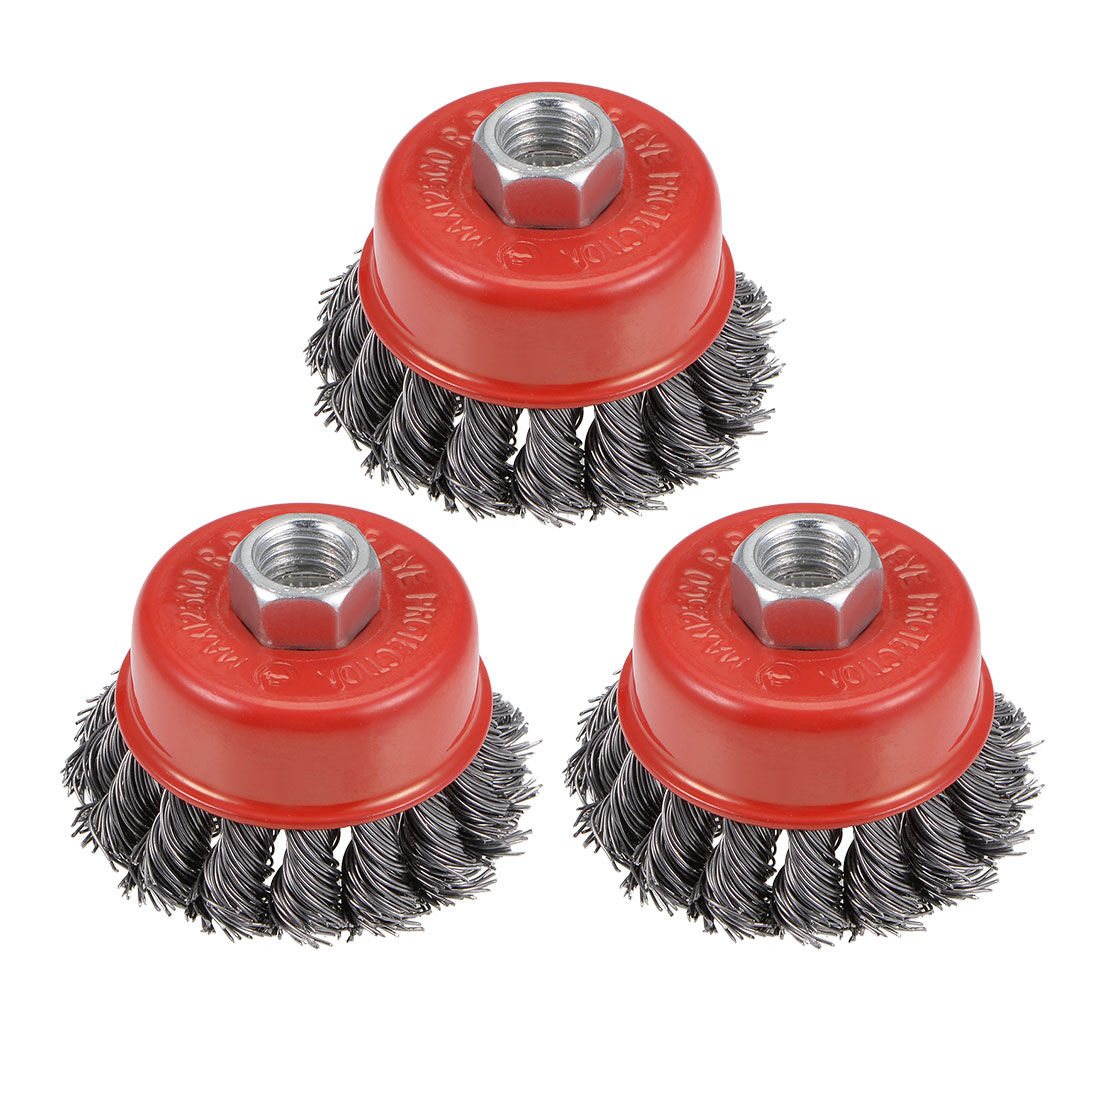 2-1/2-Inch Wire Cup Brush Twist Knotted Crimped Steel w M14 Threaded Hole 3 Pcs